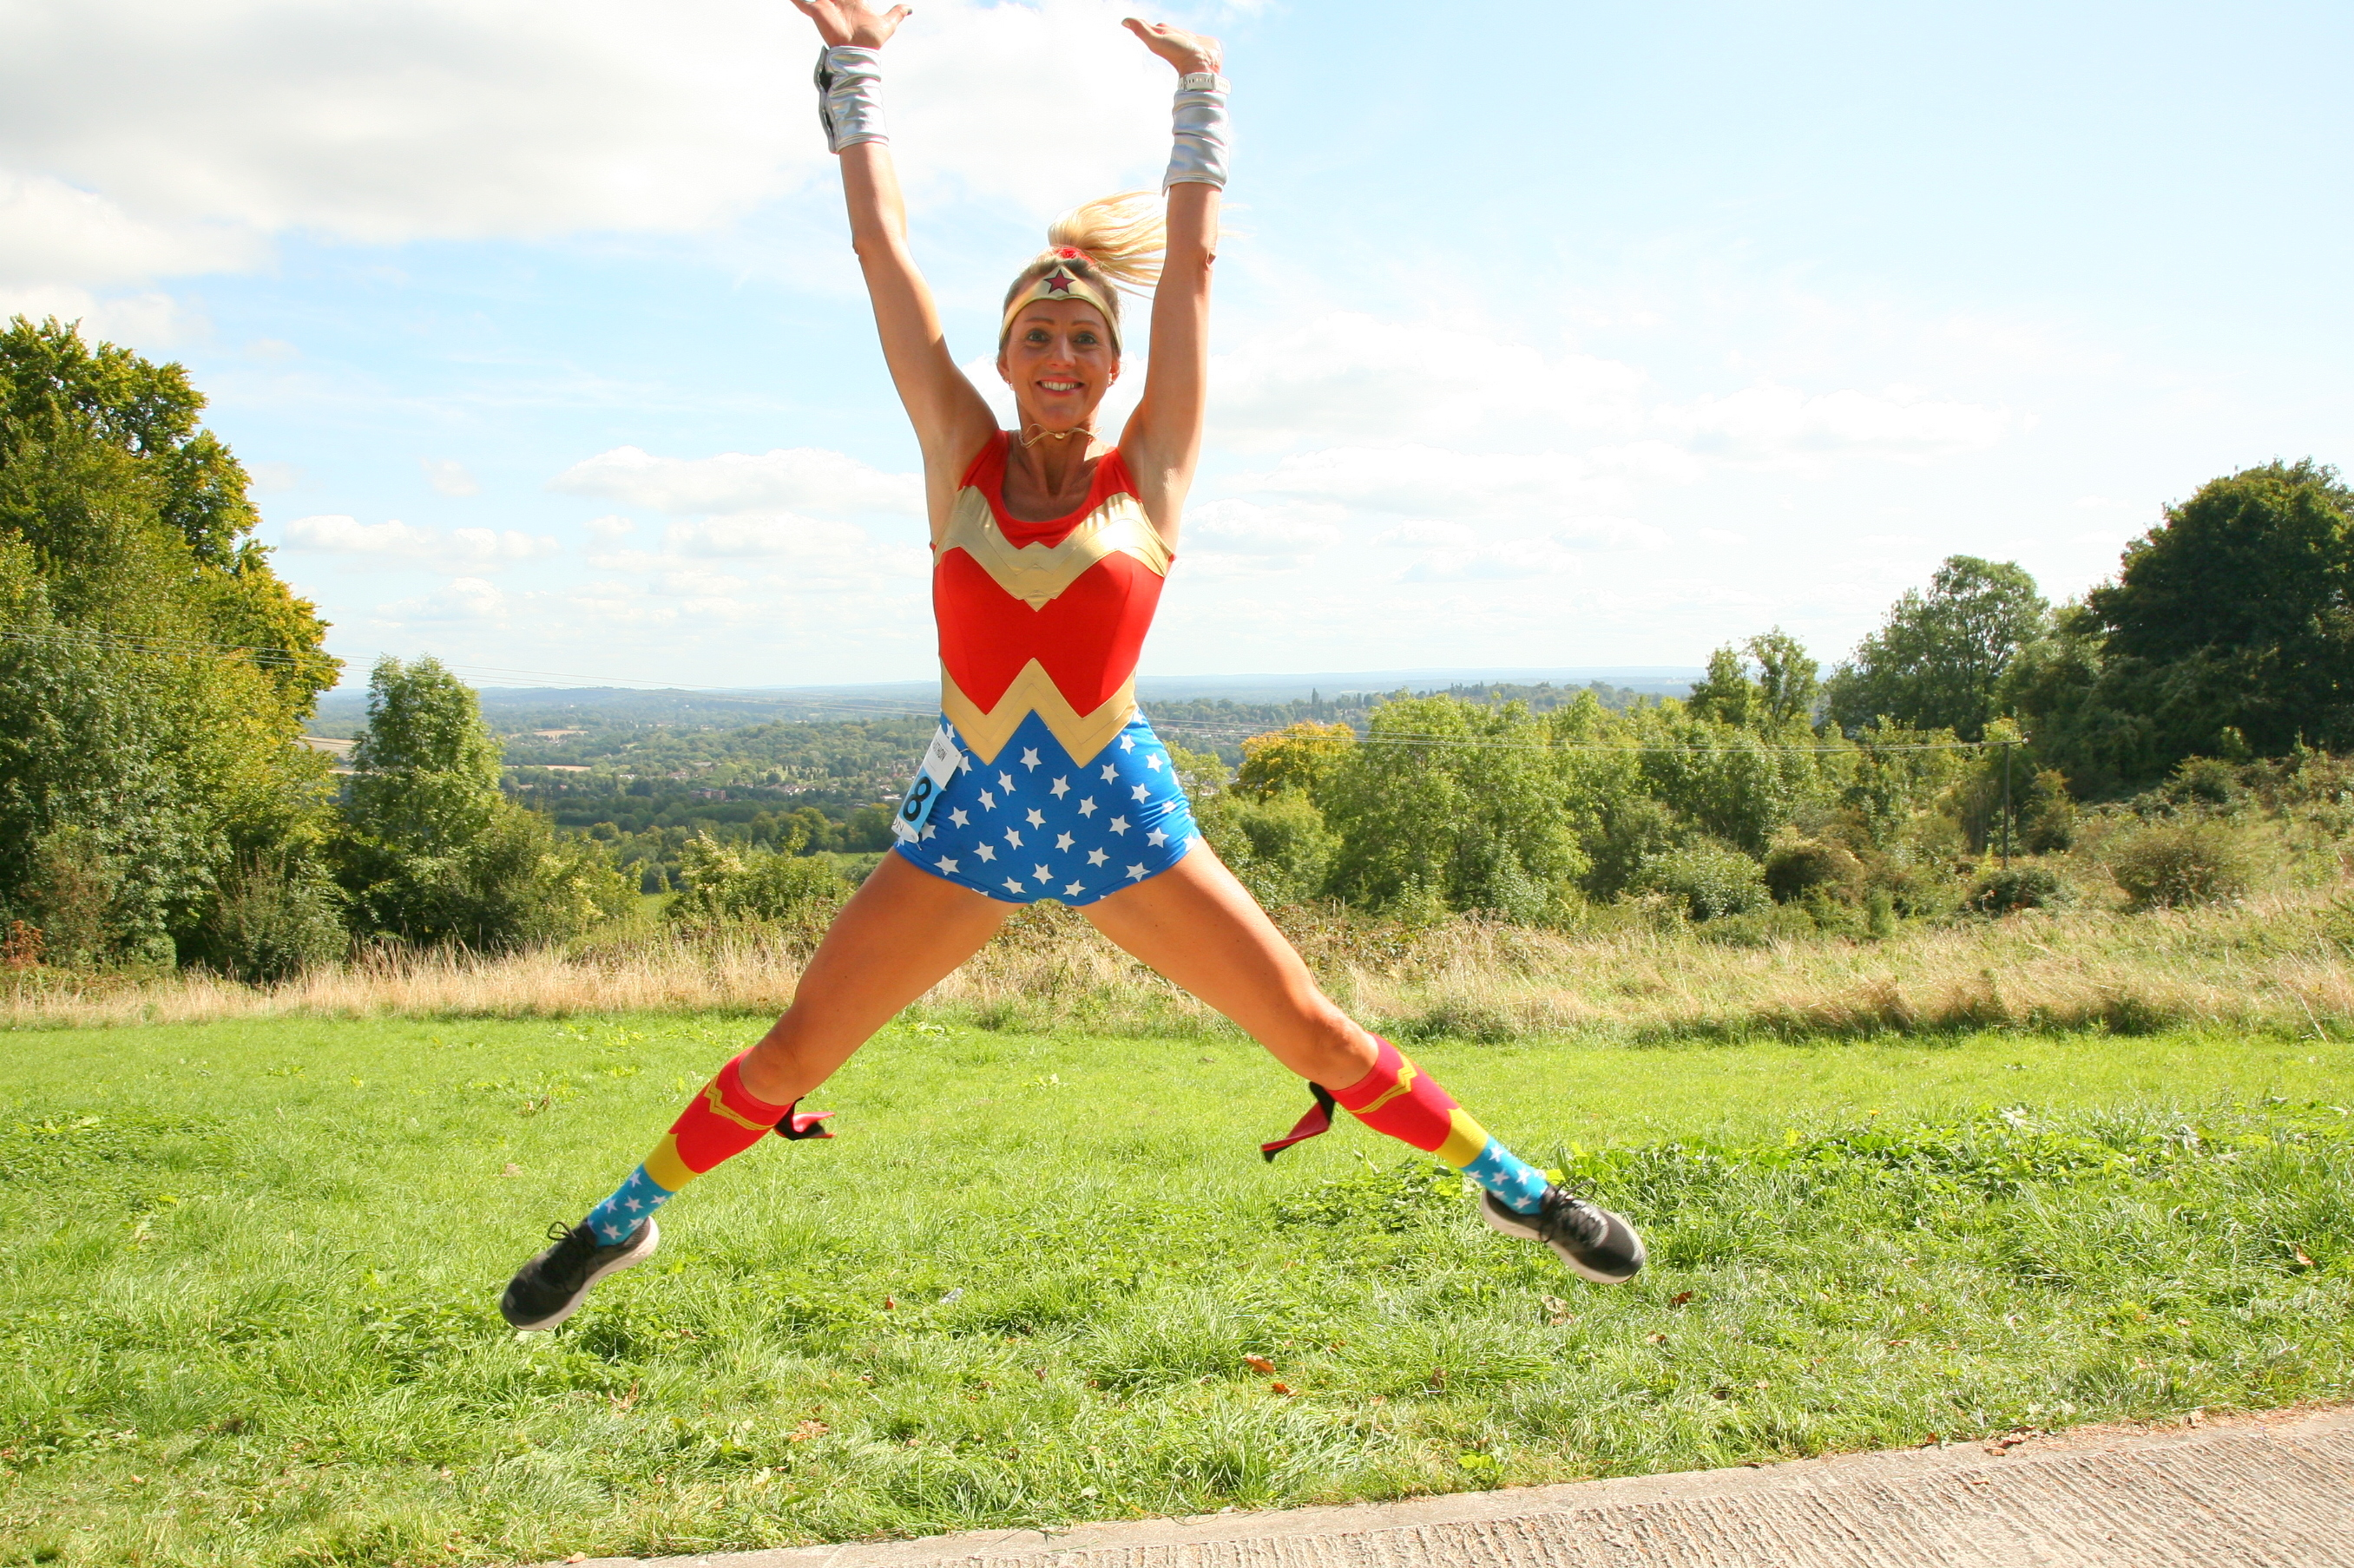 super woman star jumpJPG